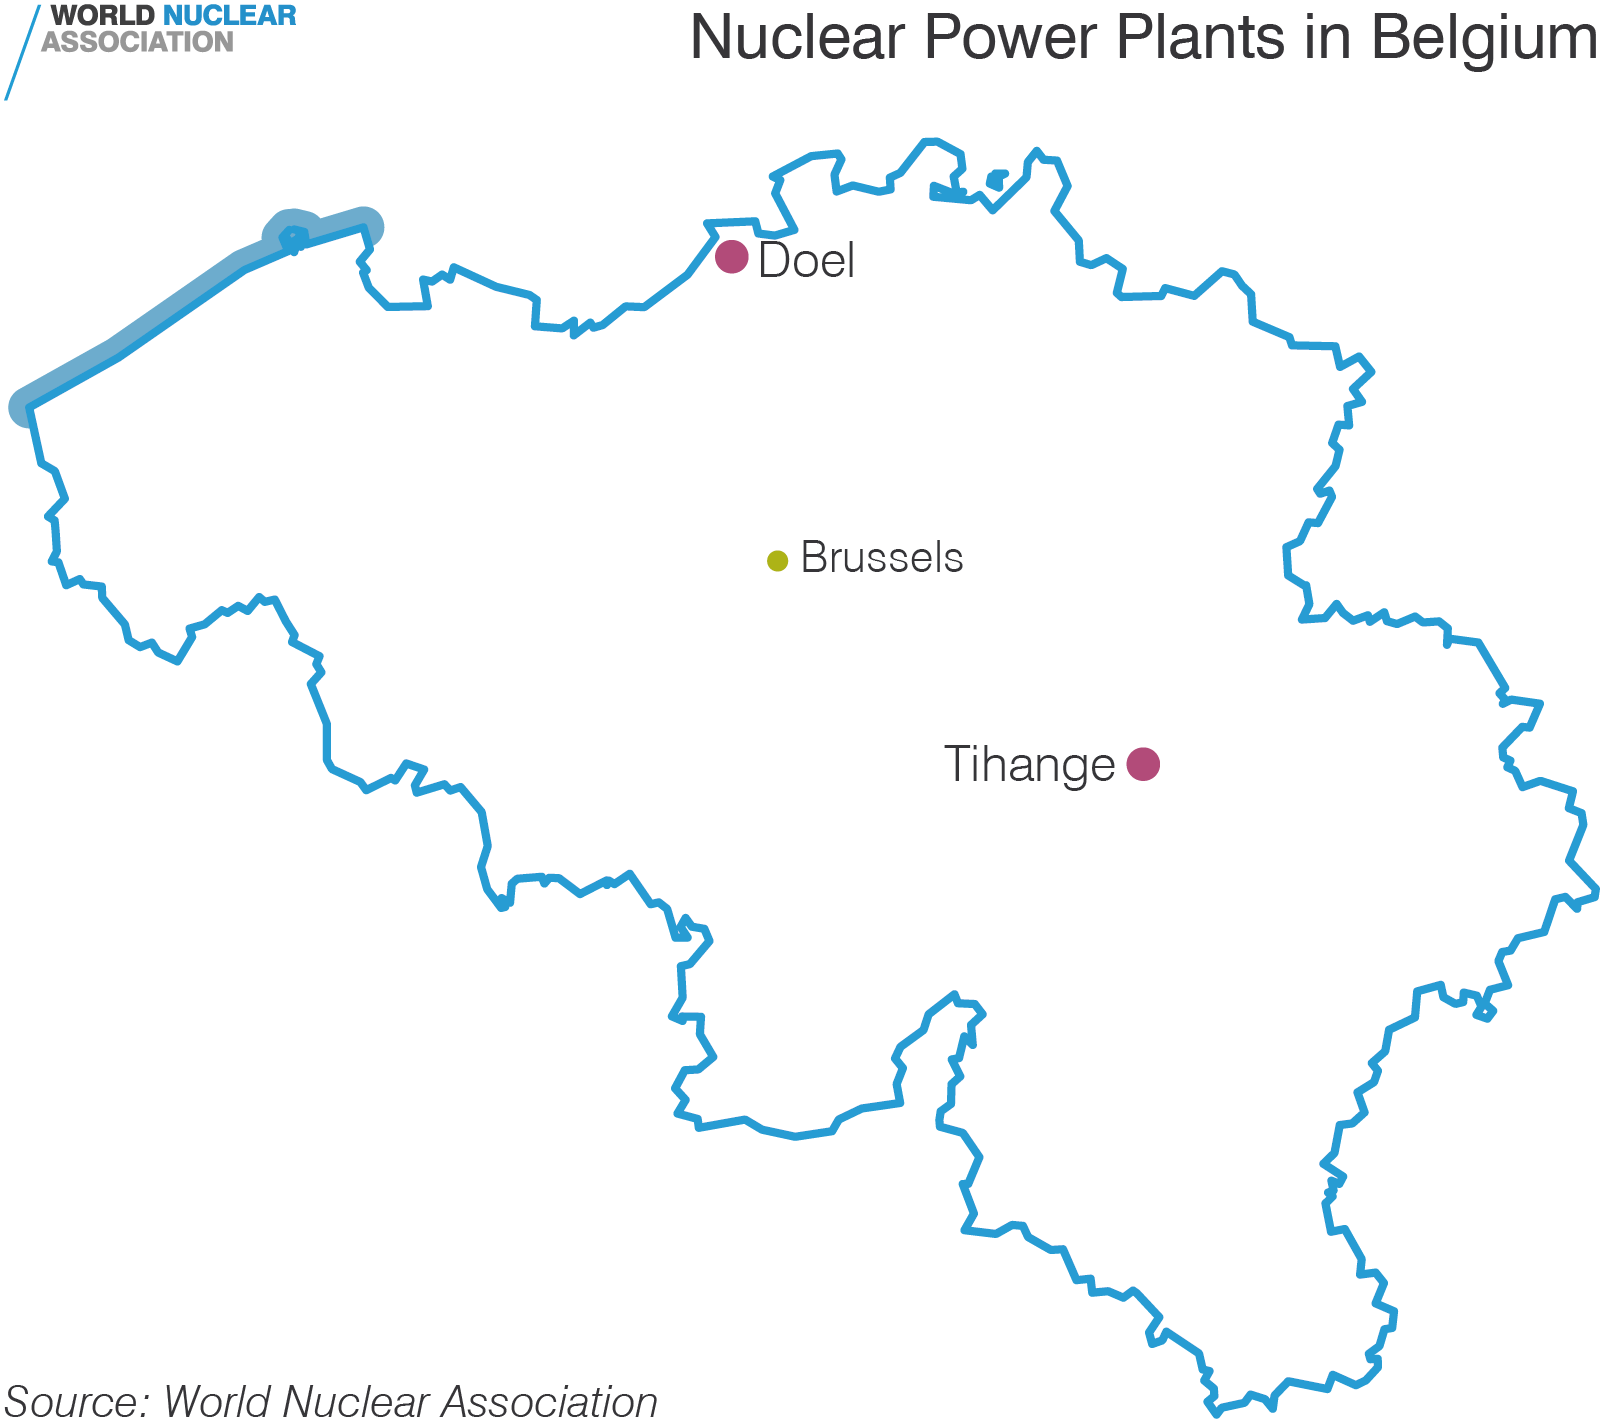 Nuclear Power Plants in Belgium